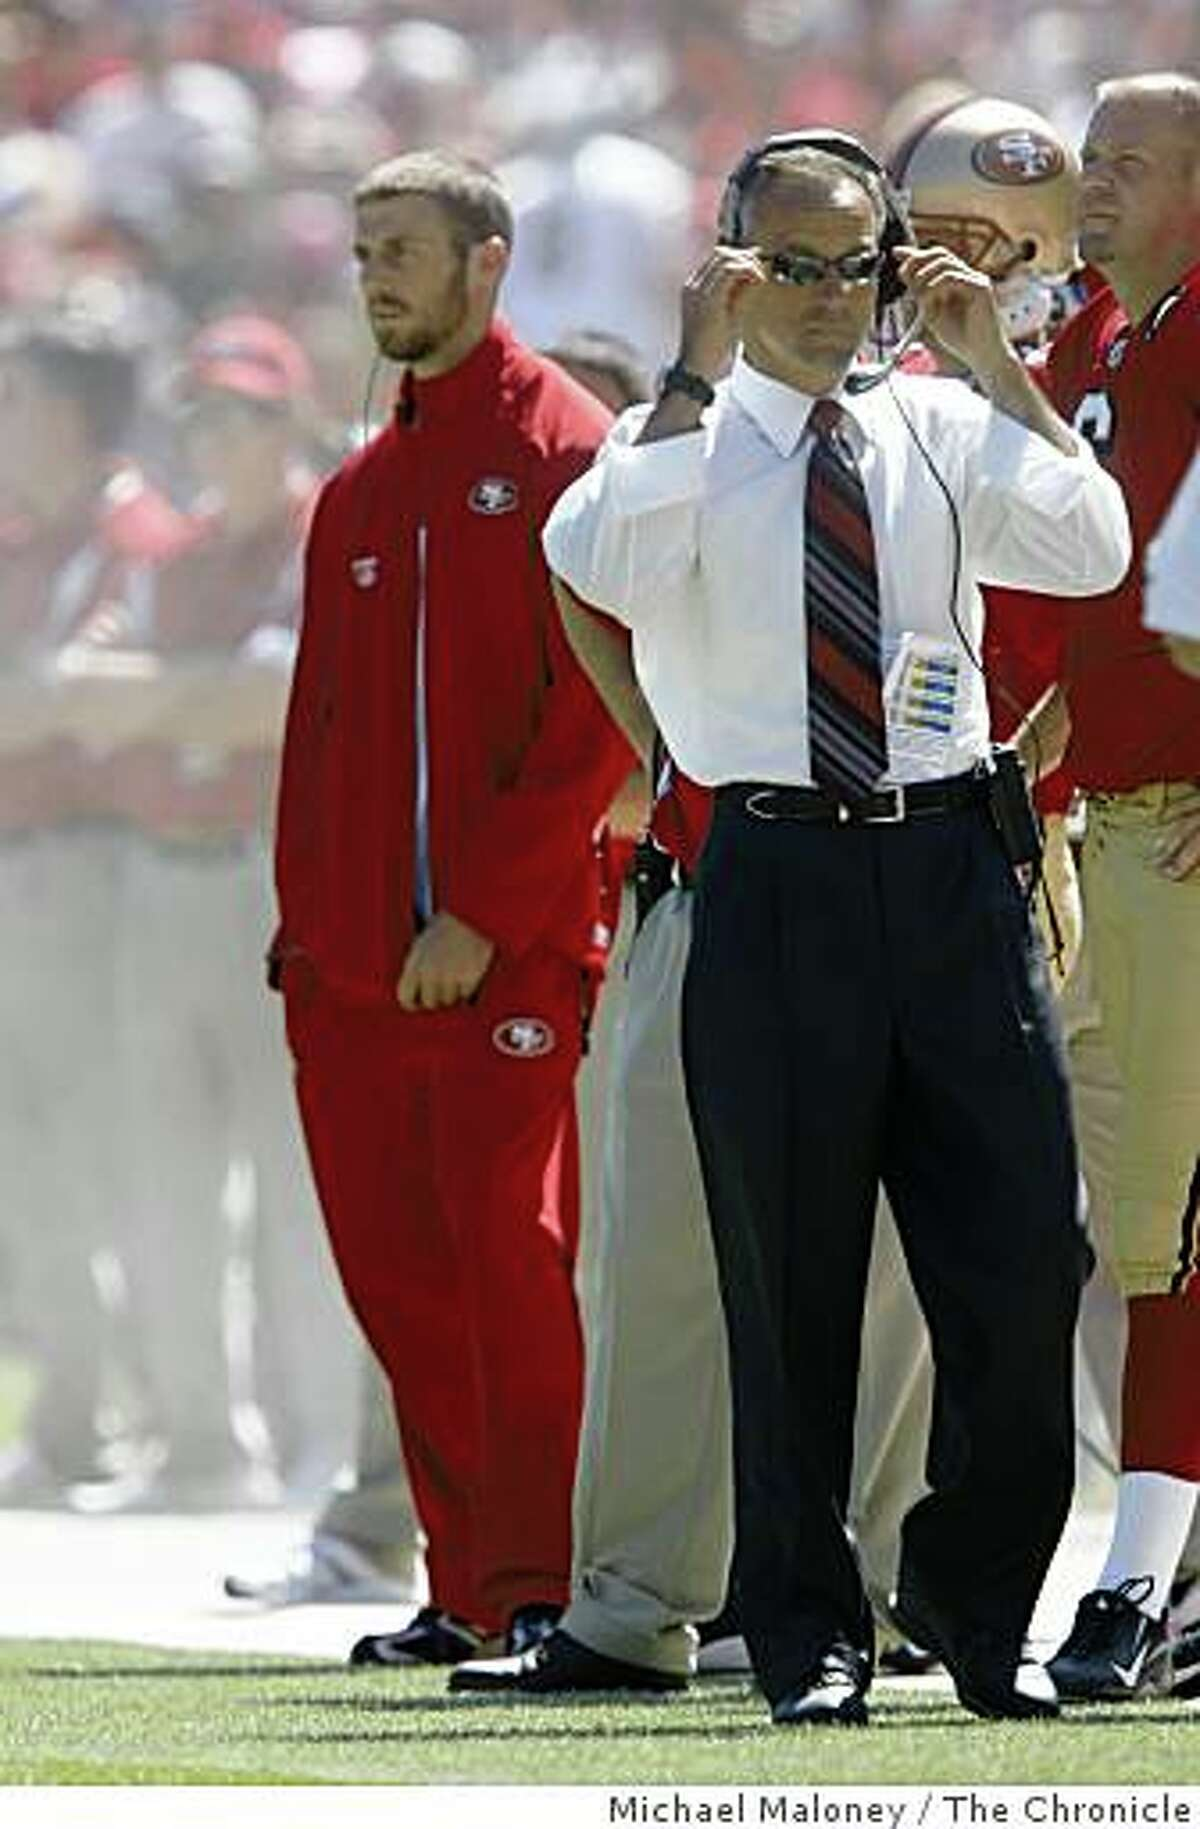 San Francisco 49ers injured quarterback Alex Smith (left) on the sidelines as head coach Mike Nolan roams the sidelines in the 2nd quarter.The San Francisco 49ers host the Arizona Cardinals in their NFL season opener at Candlestick Park in San Francisco, Calif., on Sept. 7, 2008.